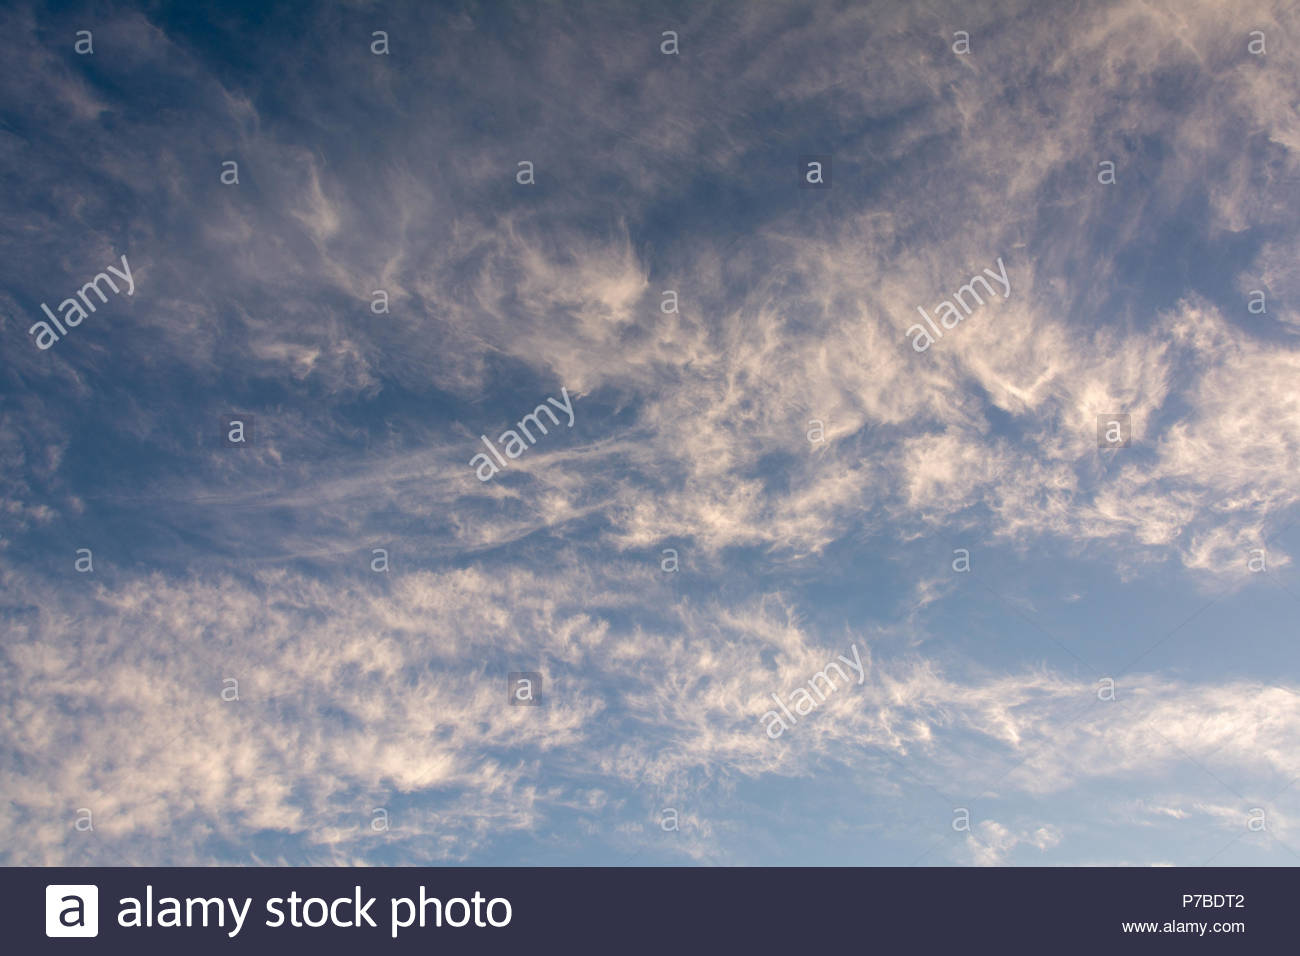 Beautiful cloud patterns set off by a blue sky - Stock Image